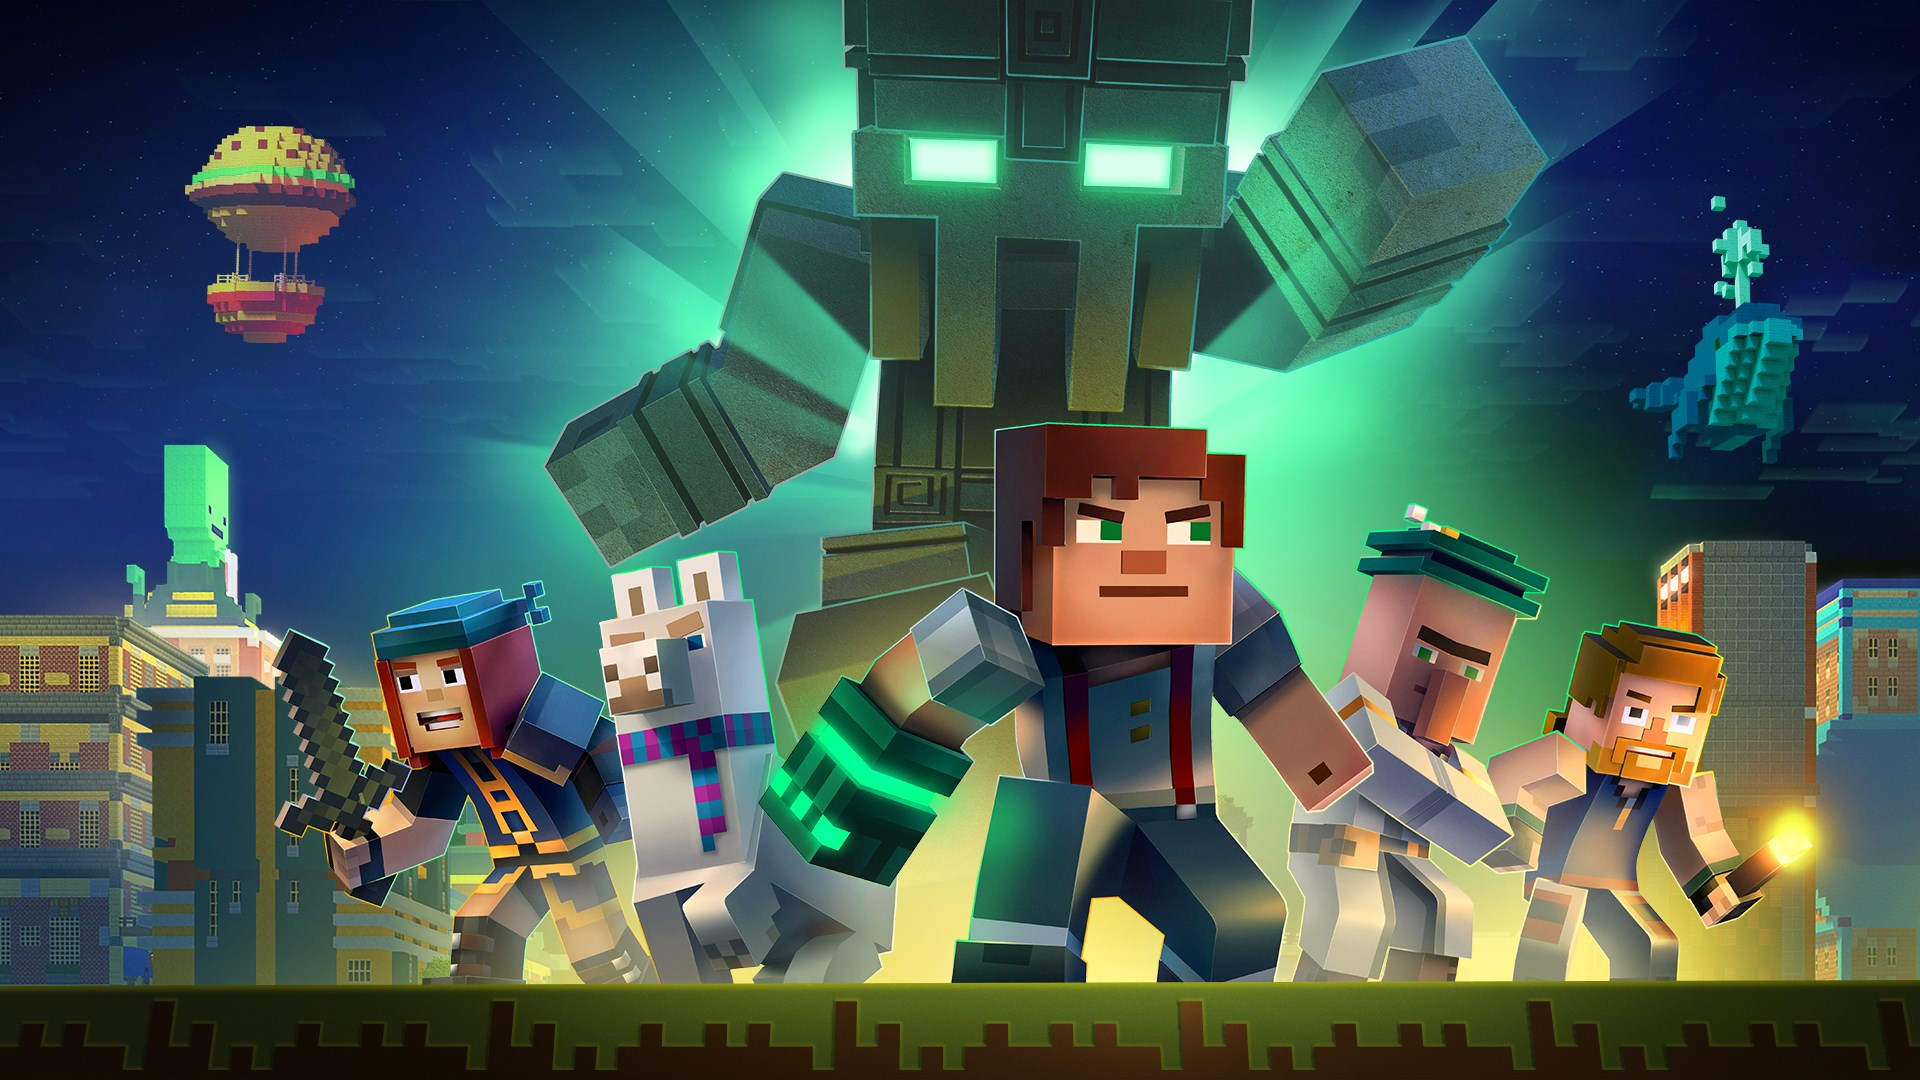 download Minecraft pocket edition using Aptoide